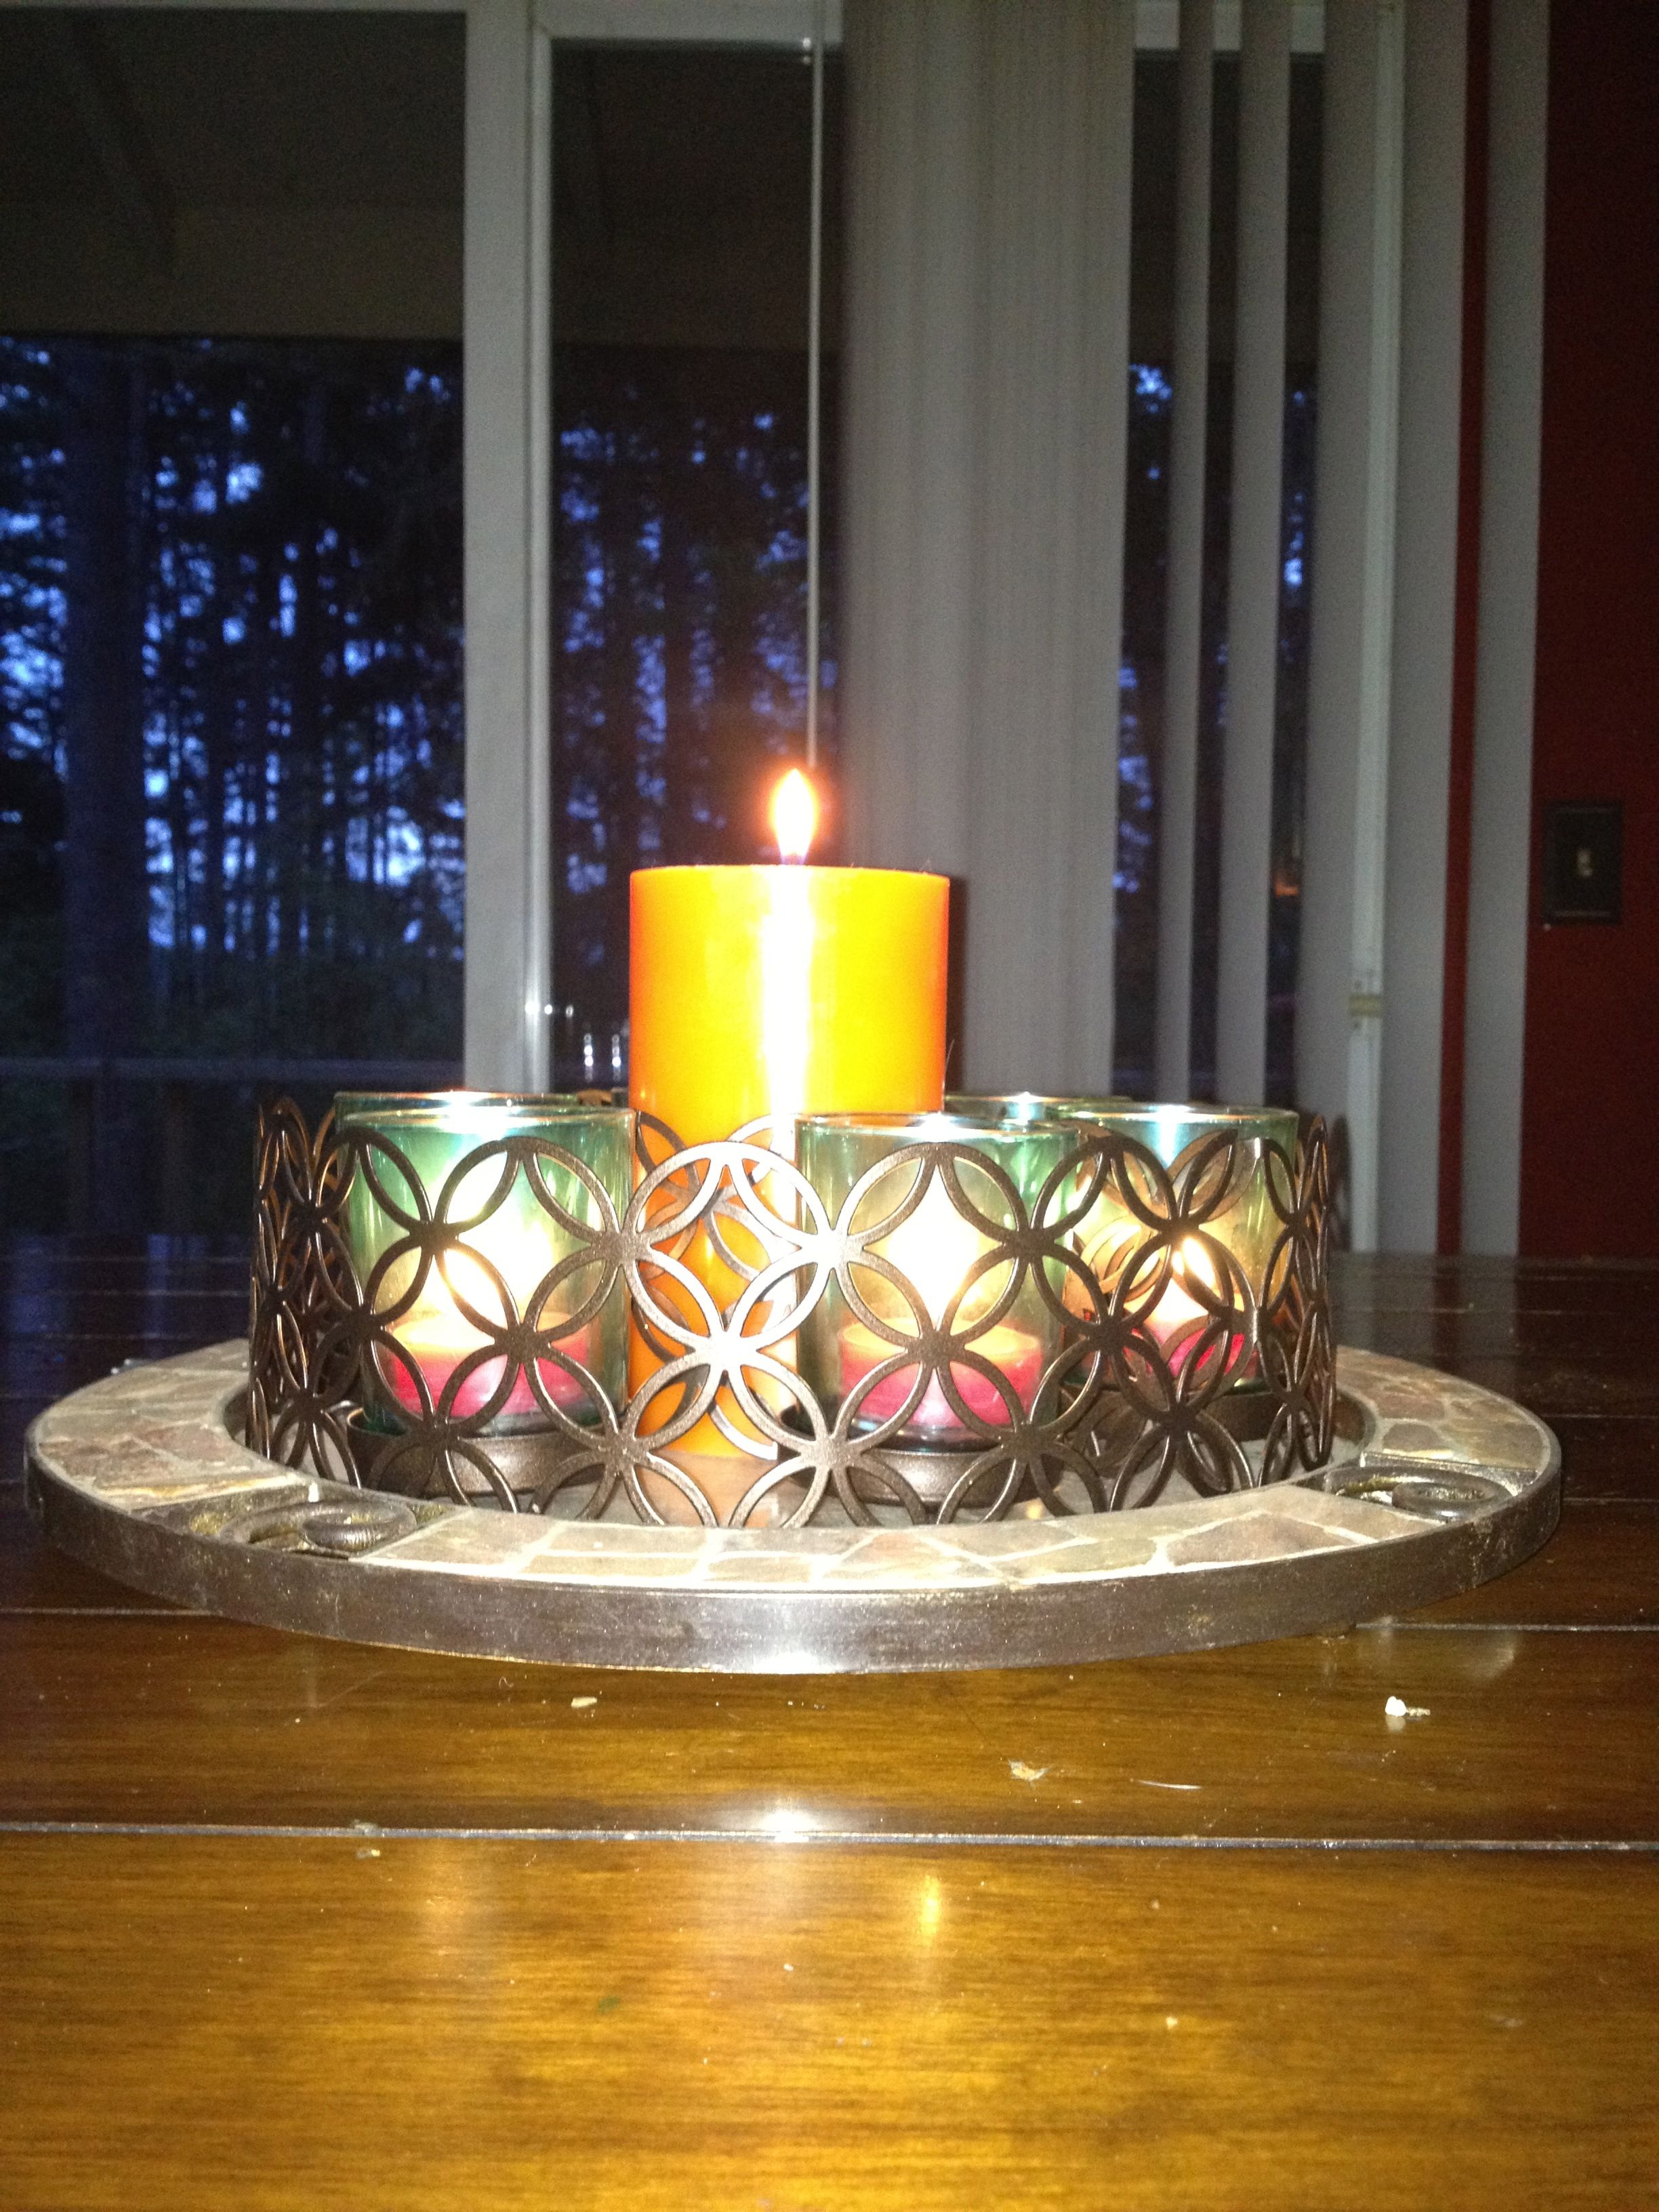 When I cant use my island centerpiece outside, I bring it to my kitchen...I <3 the versatility of Partylite products.